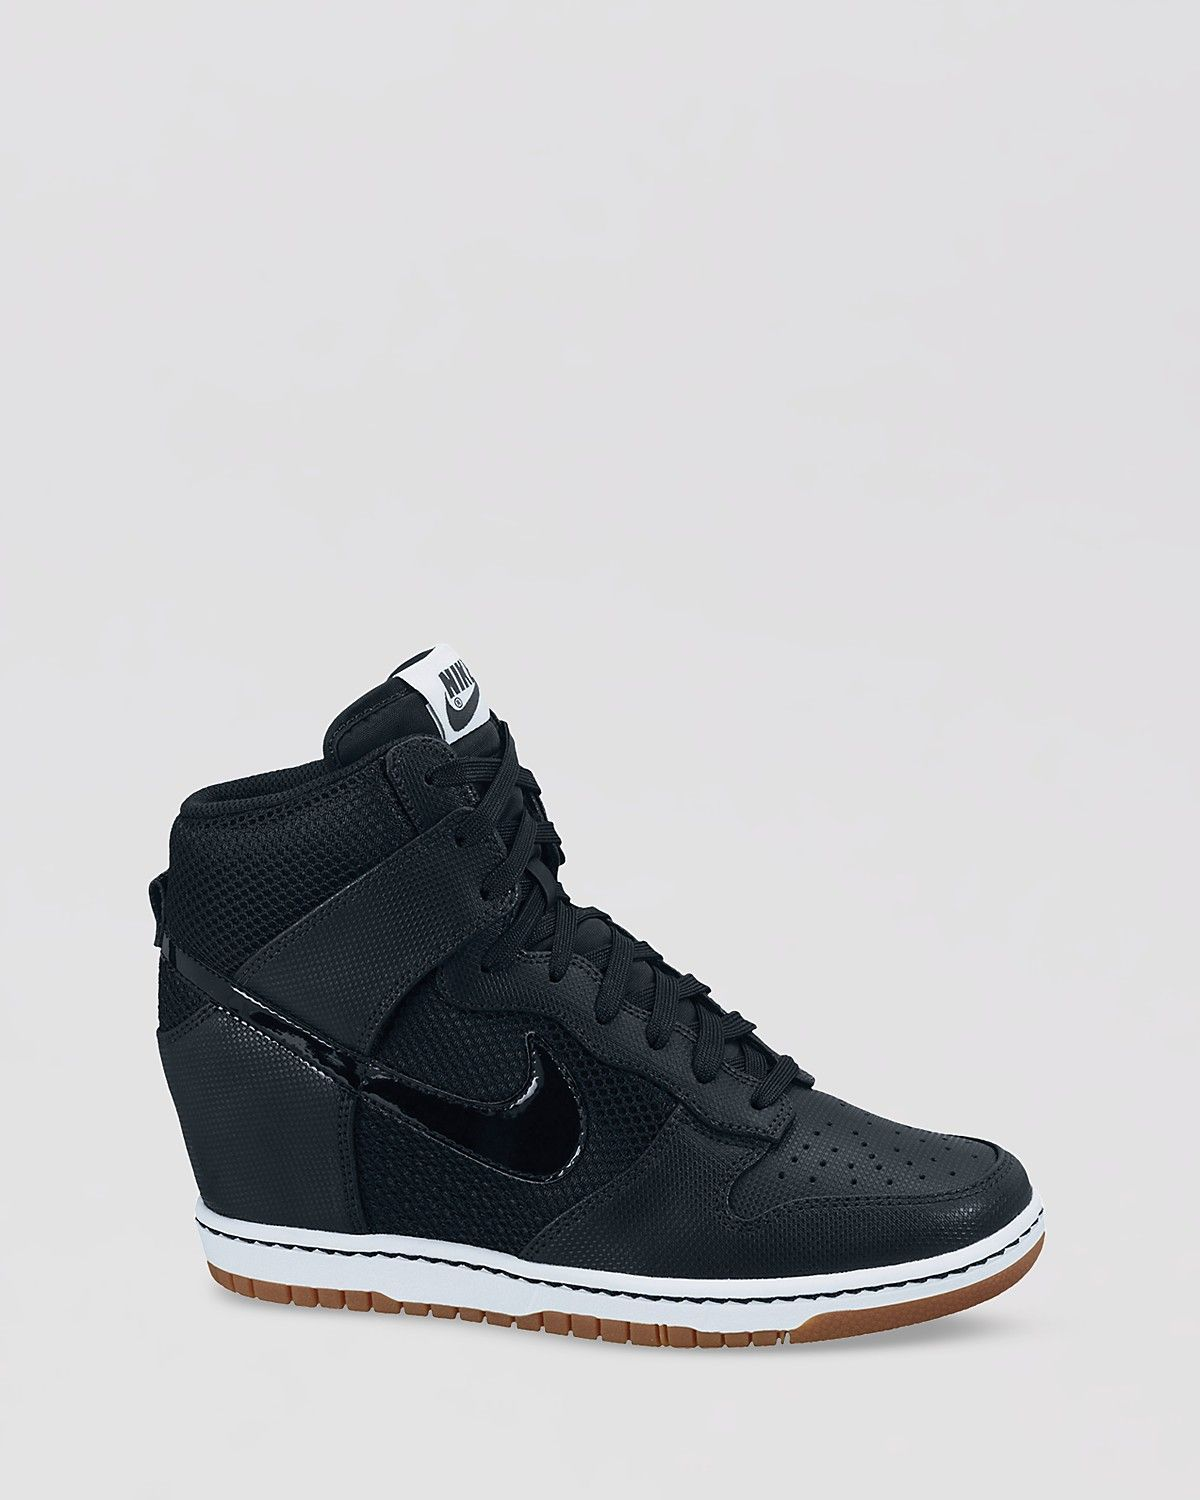 Nike Air 1 Lifted Women's Shoe, By Nike - Lift your wings the air jordan 1 lifted women's shoe updates the original basketball-inspired design with a .